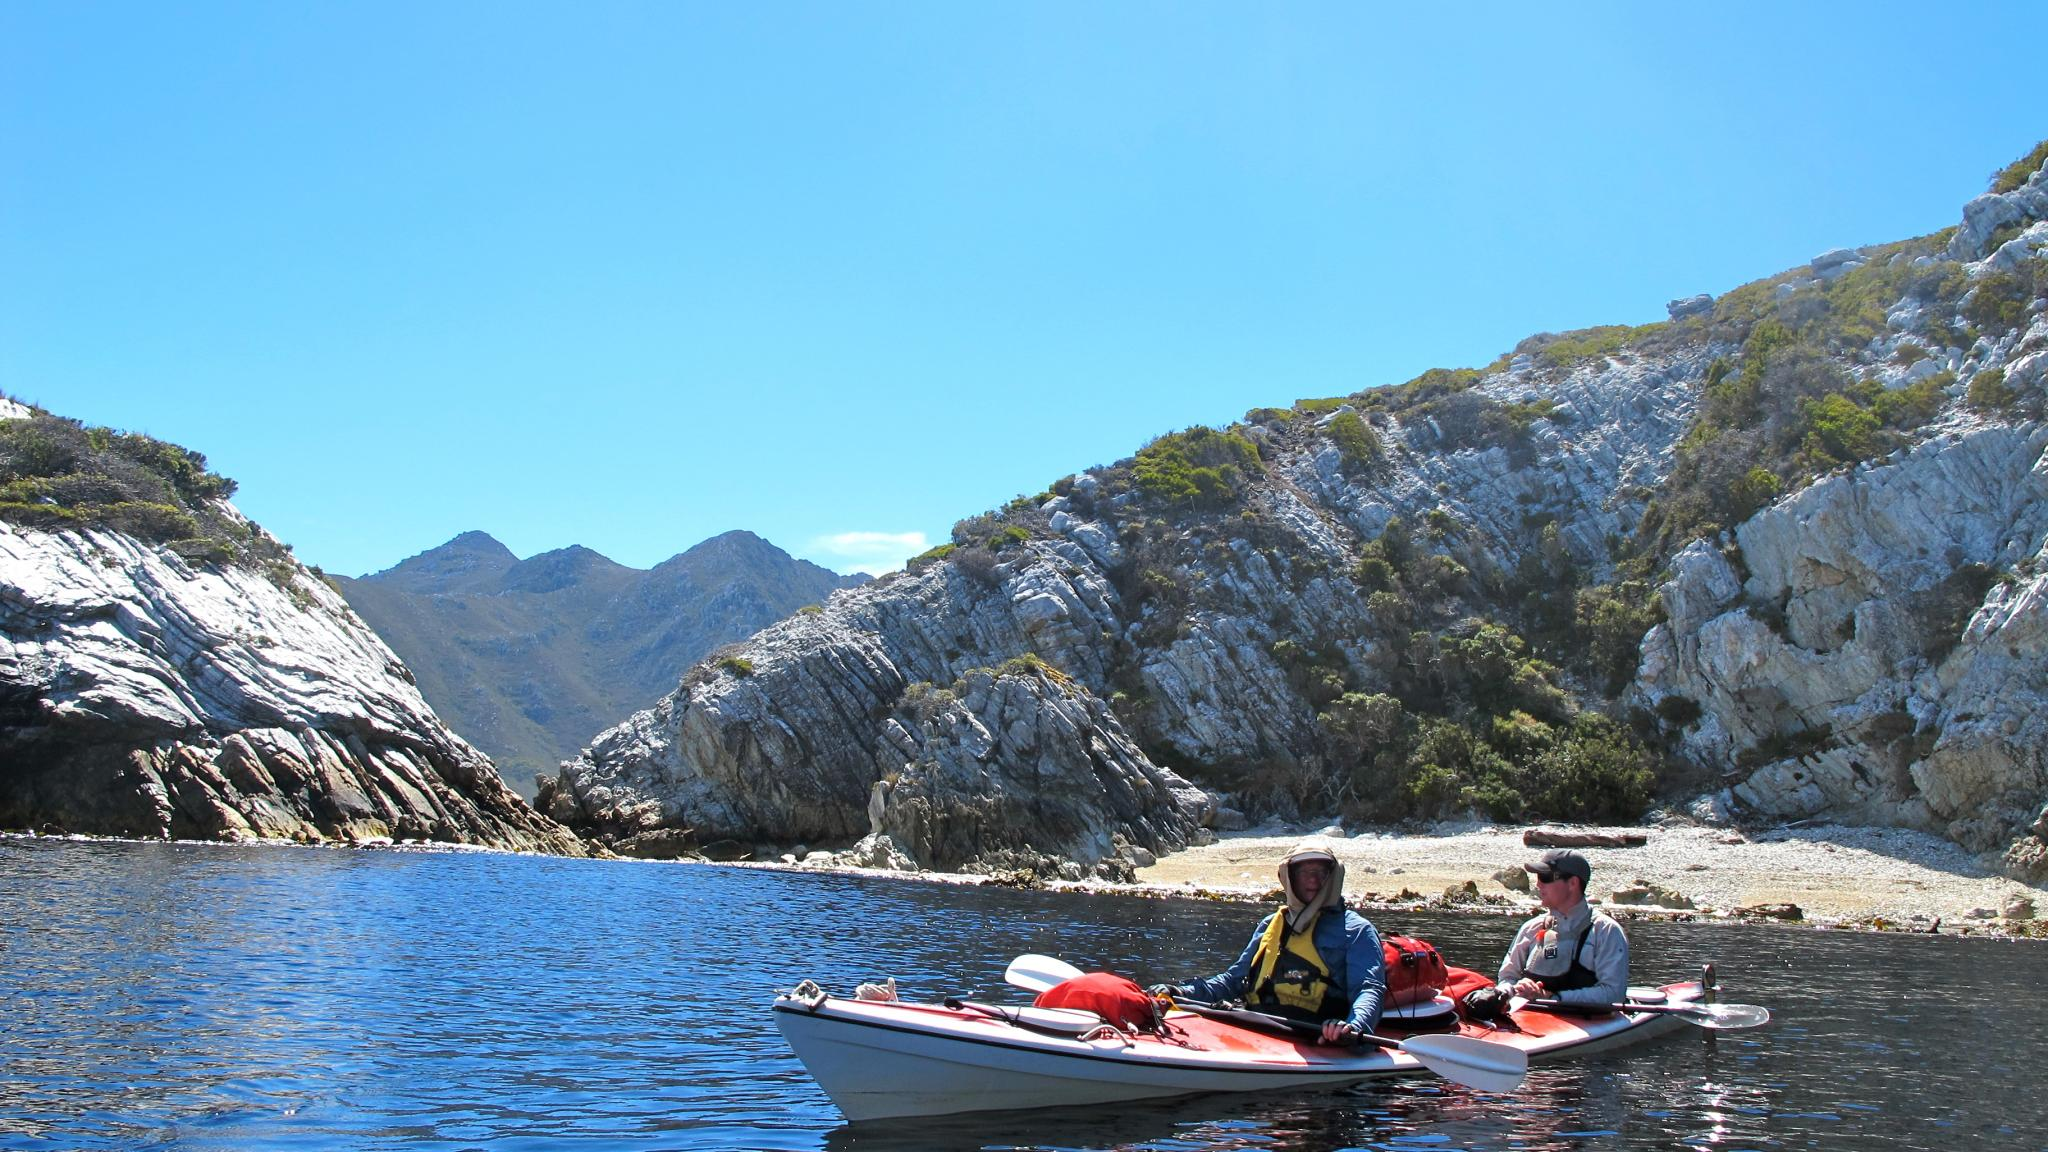 Roaring 40s Kayaking - Learn to sea kayak in Hobart Tasmania